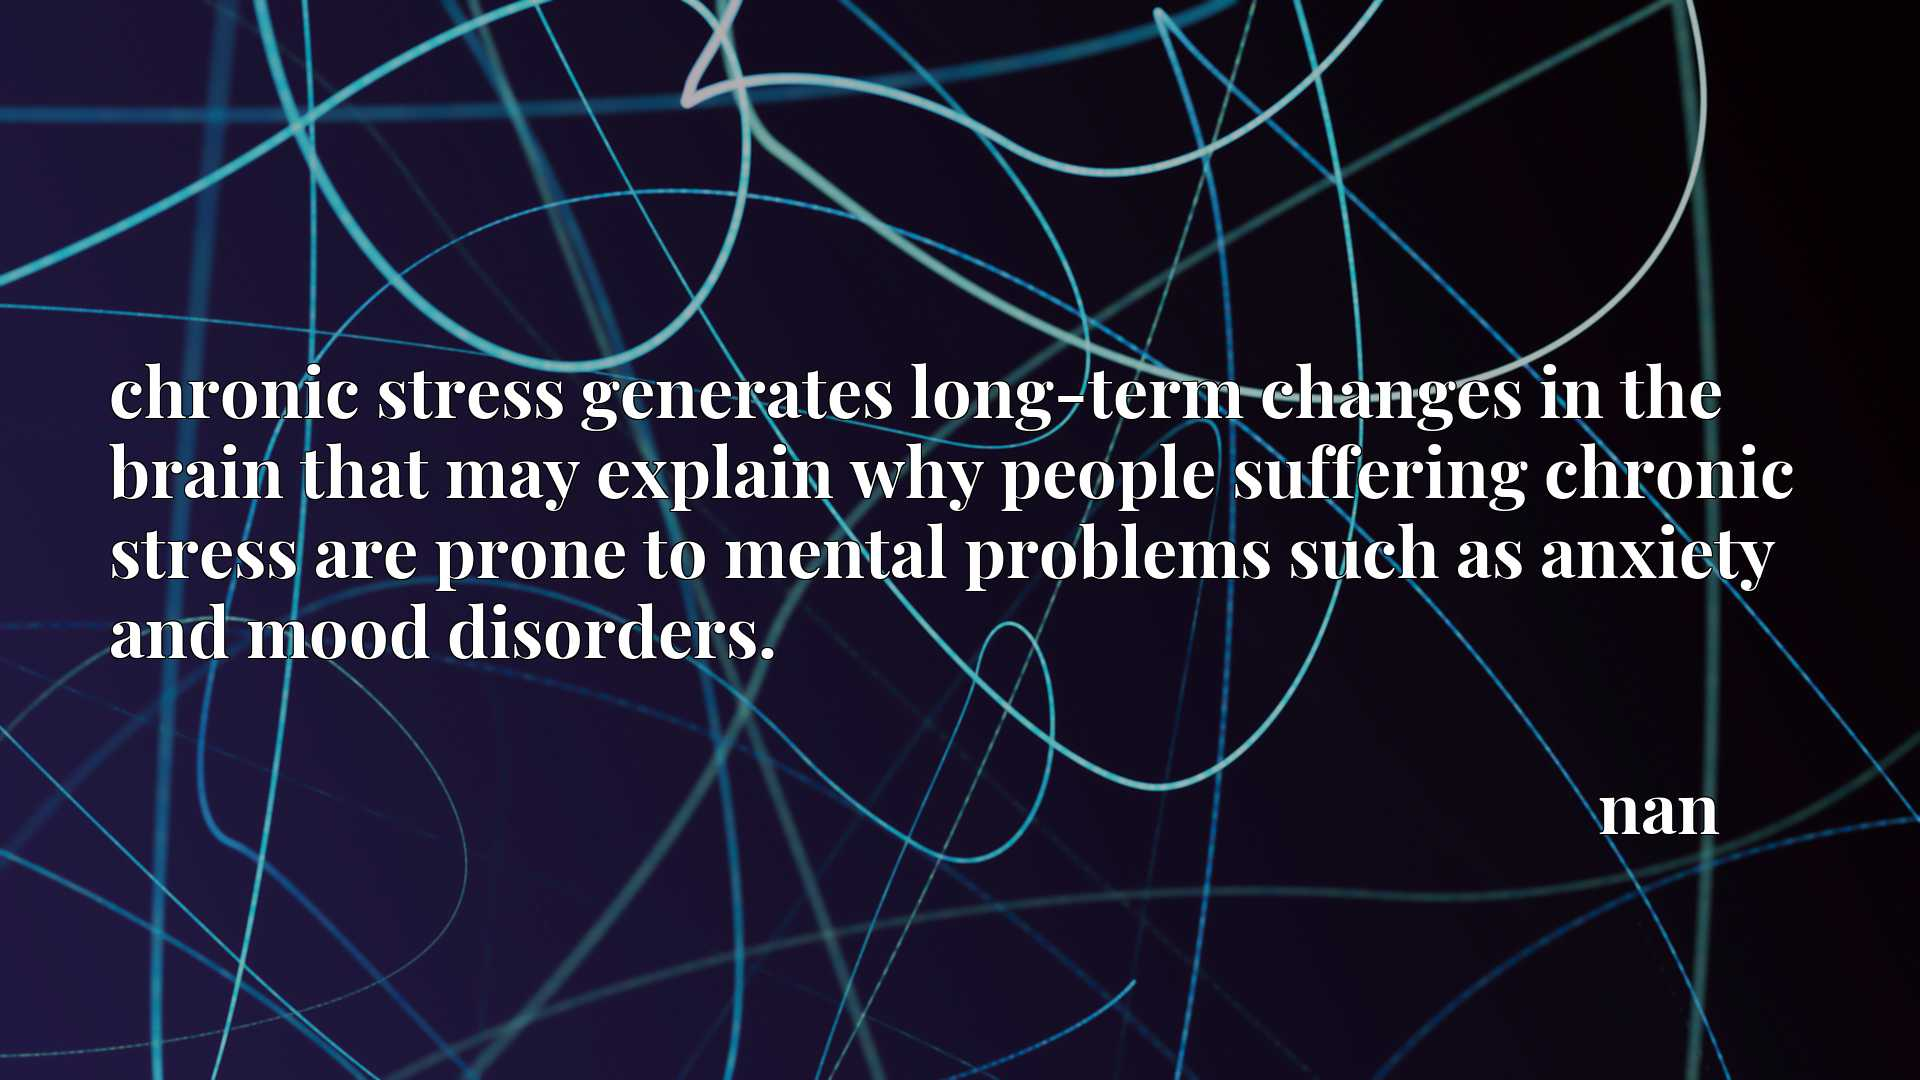 chronic stress generates long-term changes in the brain that may explain why people suffering chronic stress are prone to mental problems such as anxiety and mood disorders.